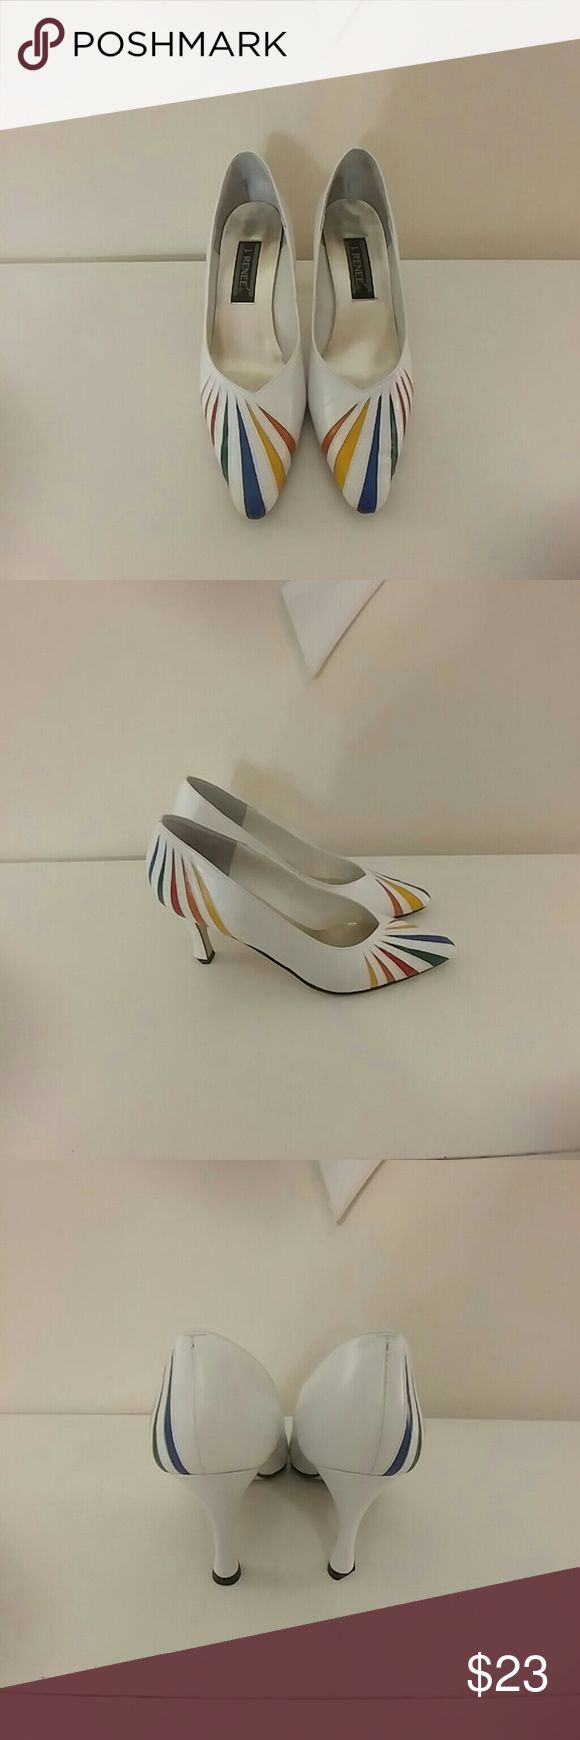 "Vintage unique abstract art rainbow pumps From j. Renee, utterly fabulous white pumps, 3""  heels, with slashes of rainbow colors, definitely statement shoes, one of the taps is chipped (pic 7) but it isn't brittle or loose, otherwise excellent condition!  Size 8.5.  These don't specify man-made or genuine leather, but i lean toward man-made.  These are quirky and fun, the style is totally classic and the colors pop Vintage Shoes Heels"